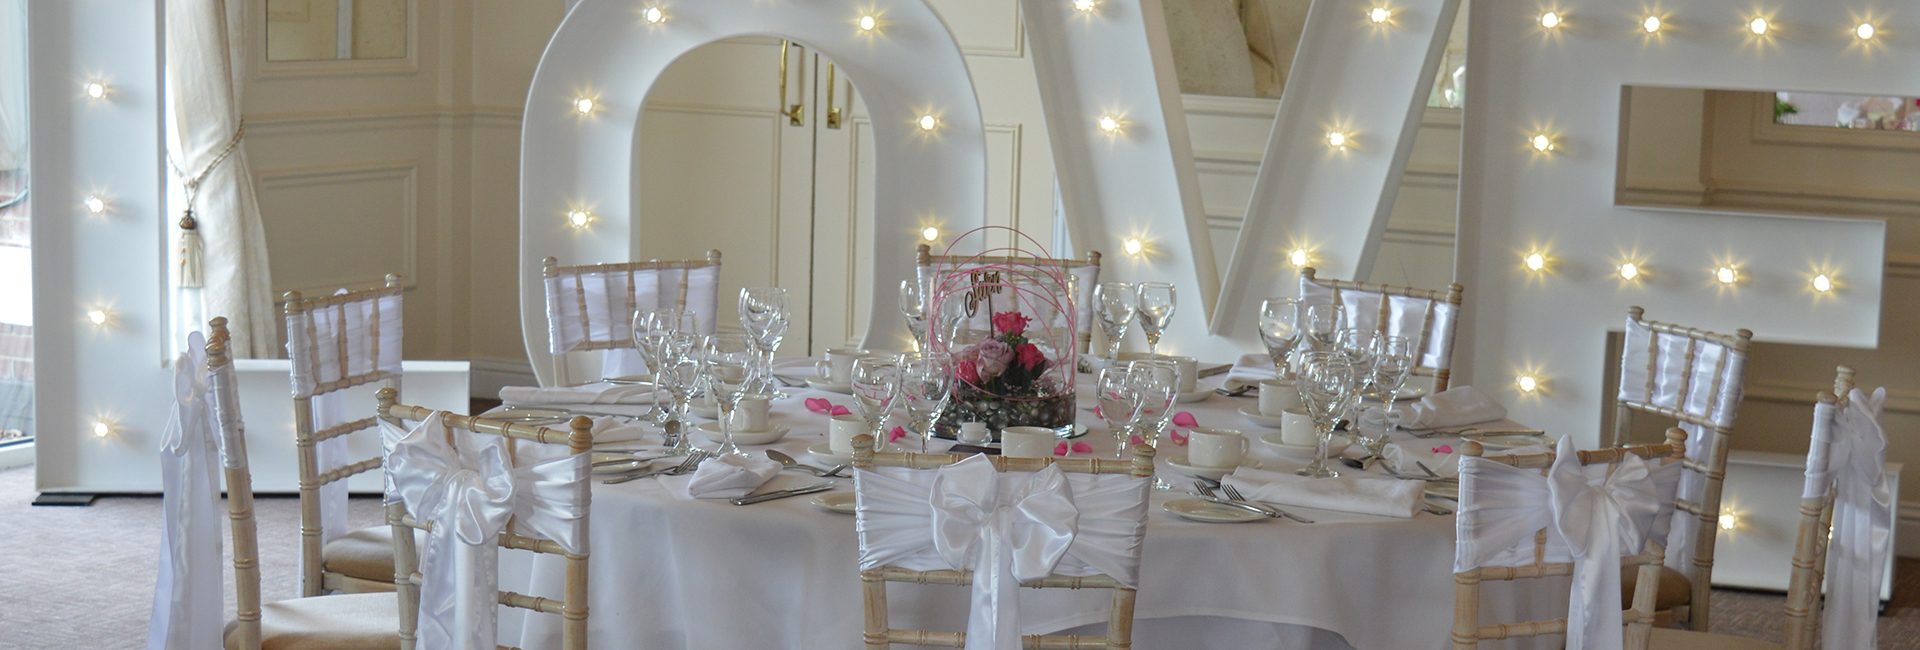 chair covers wedding costs old fashioned rocking neopets ipswich suffolk white chiavairi chairs with shashes and iluminated sign